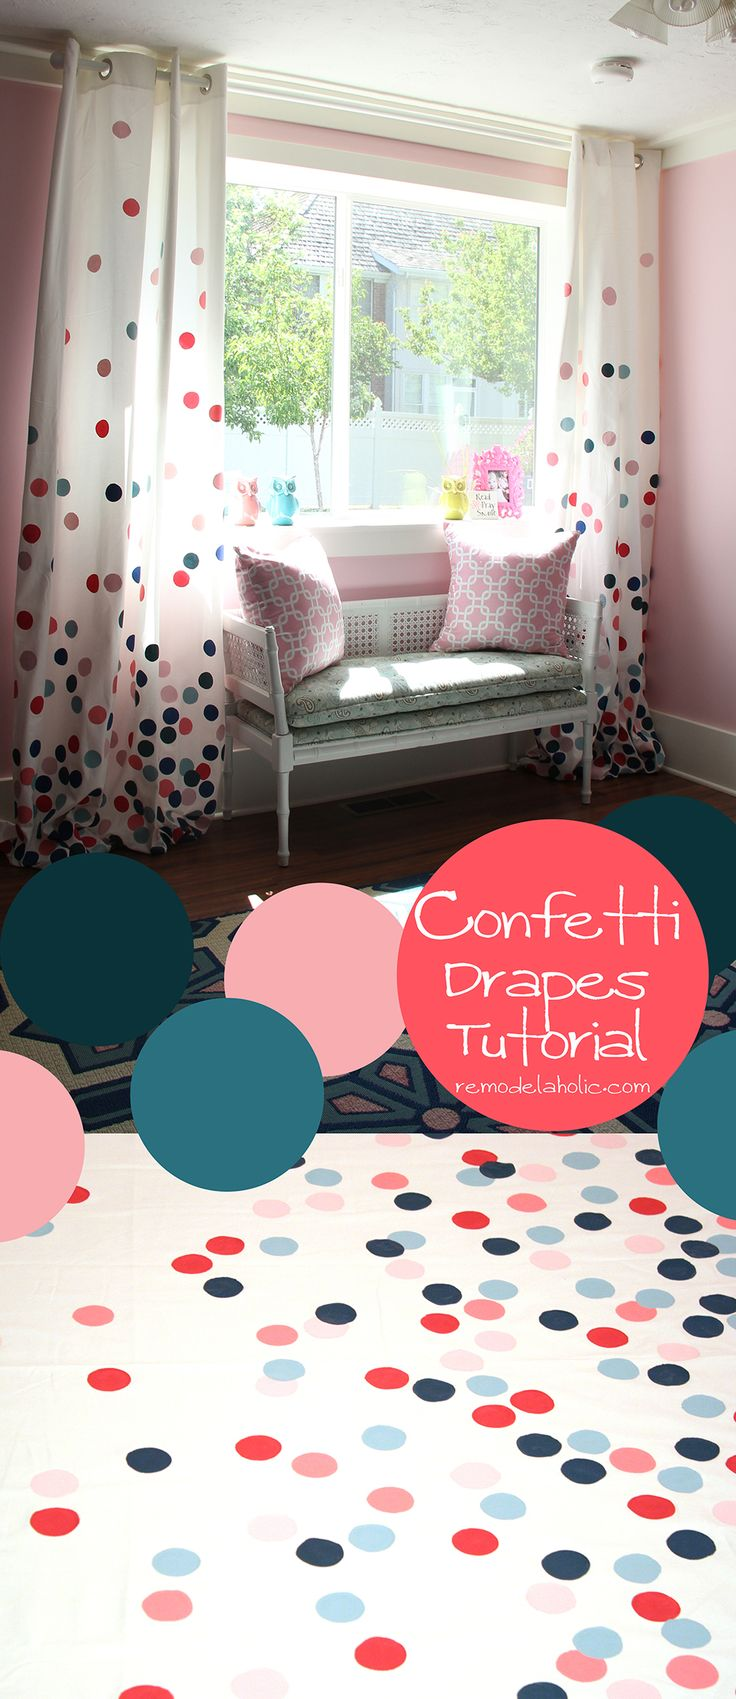 polka dot drapes confetti drapes tutorial {remodelaholic} #drapes #polkadots #girls